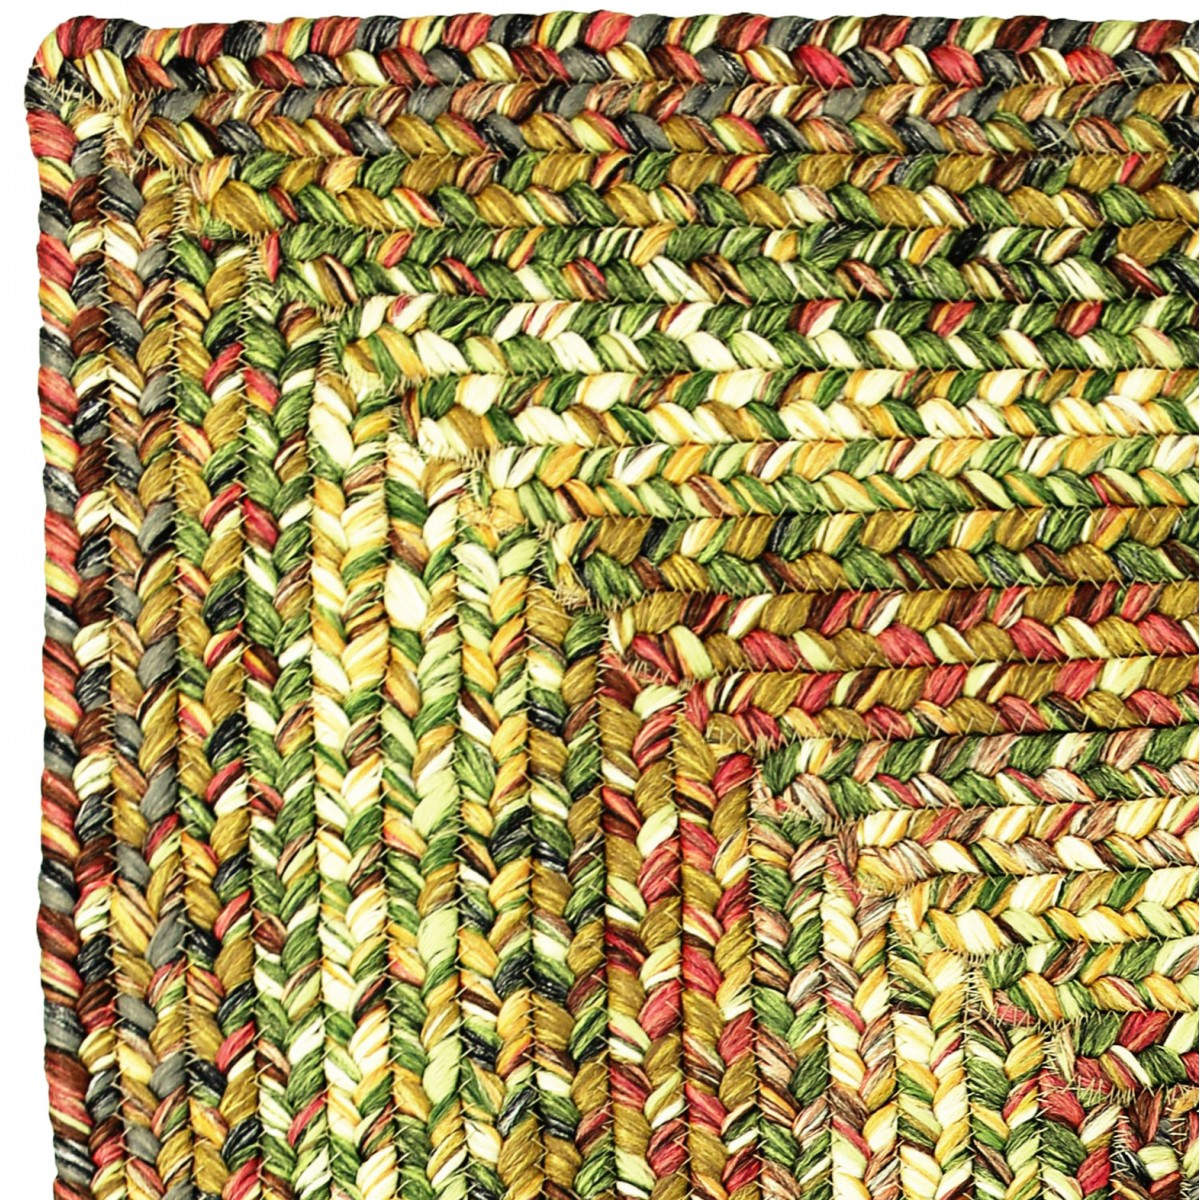 Hooked Chair Pads Home / Rugs / Braided Rugs / Ultra-Durable Braided Rugs / Rainforest ...